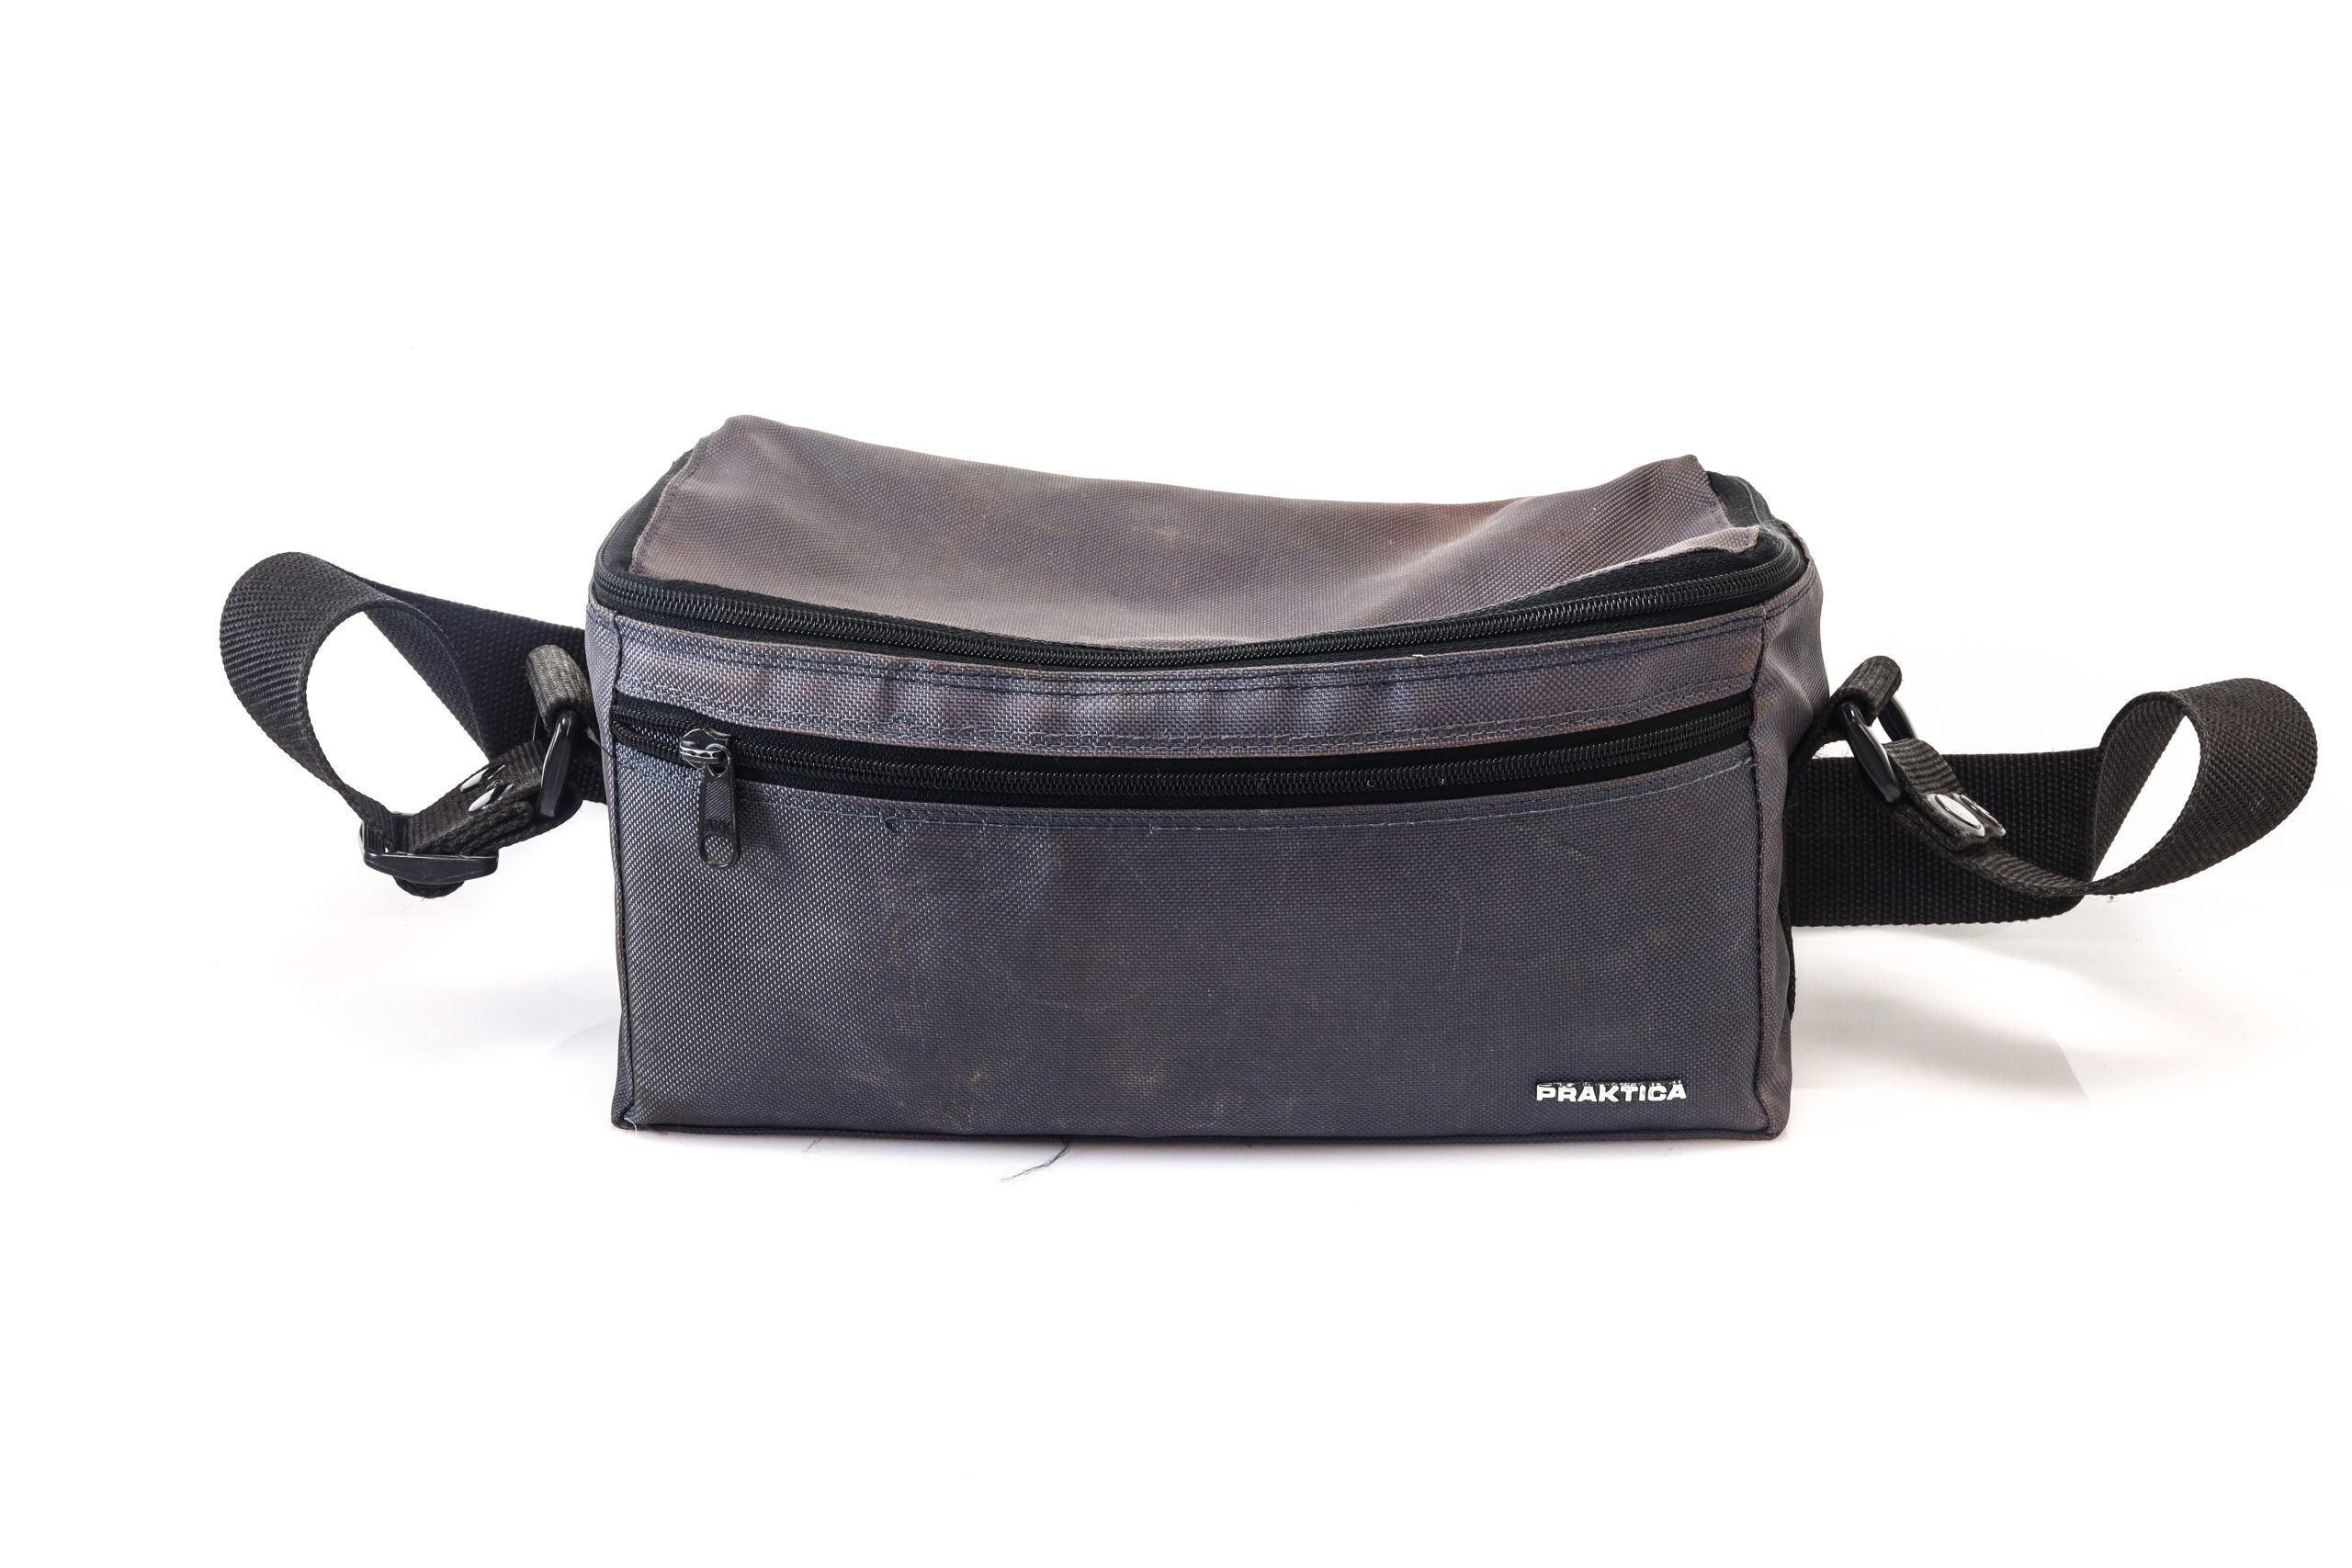 Preowned Vintage Praktica Camera Bag